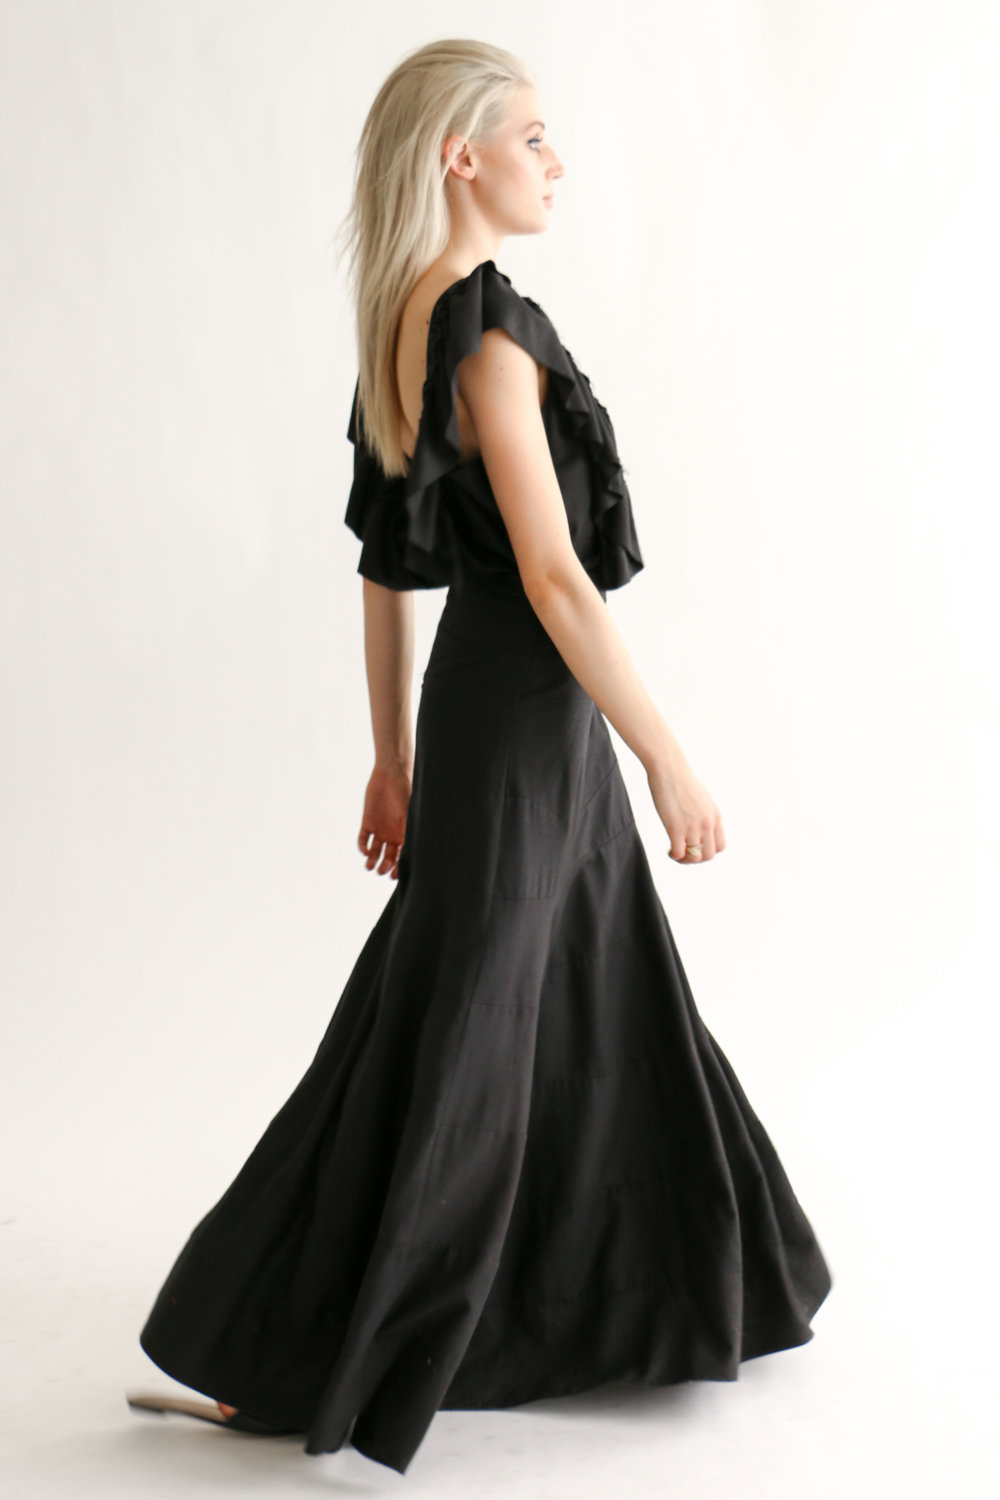 Heidi Merrick 'Olivera' dress in Black, $671